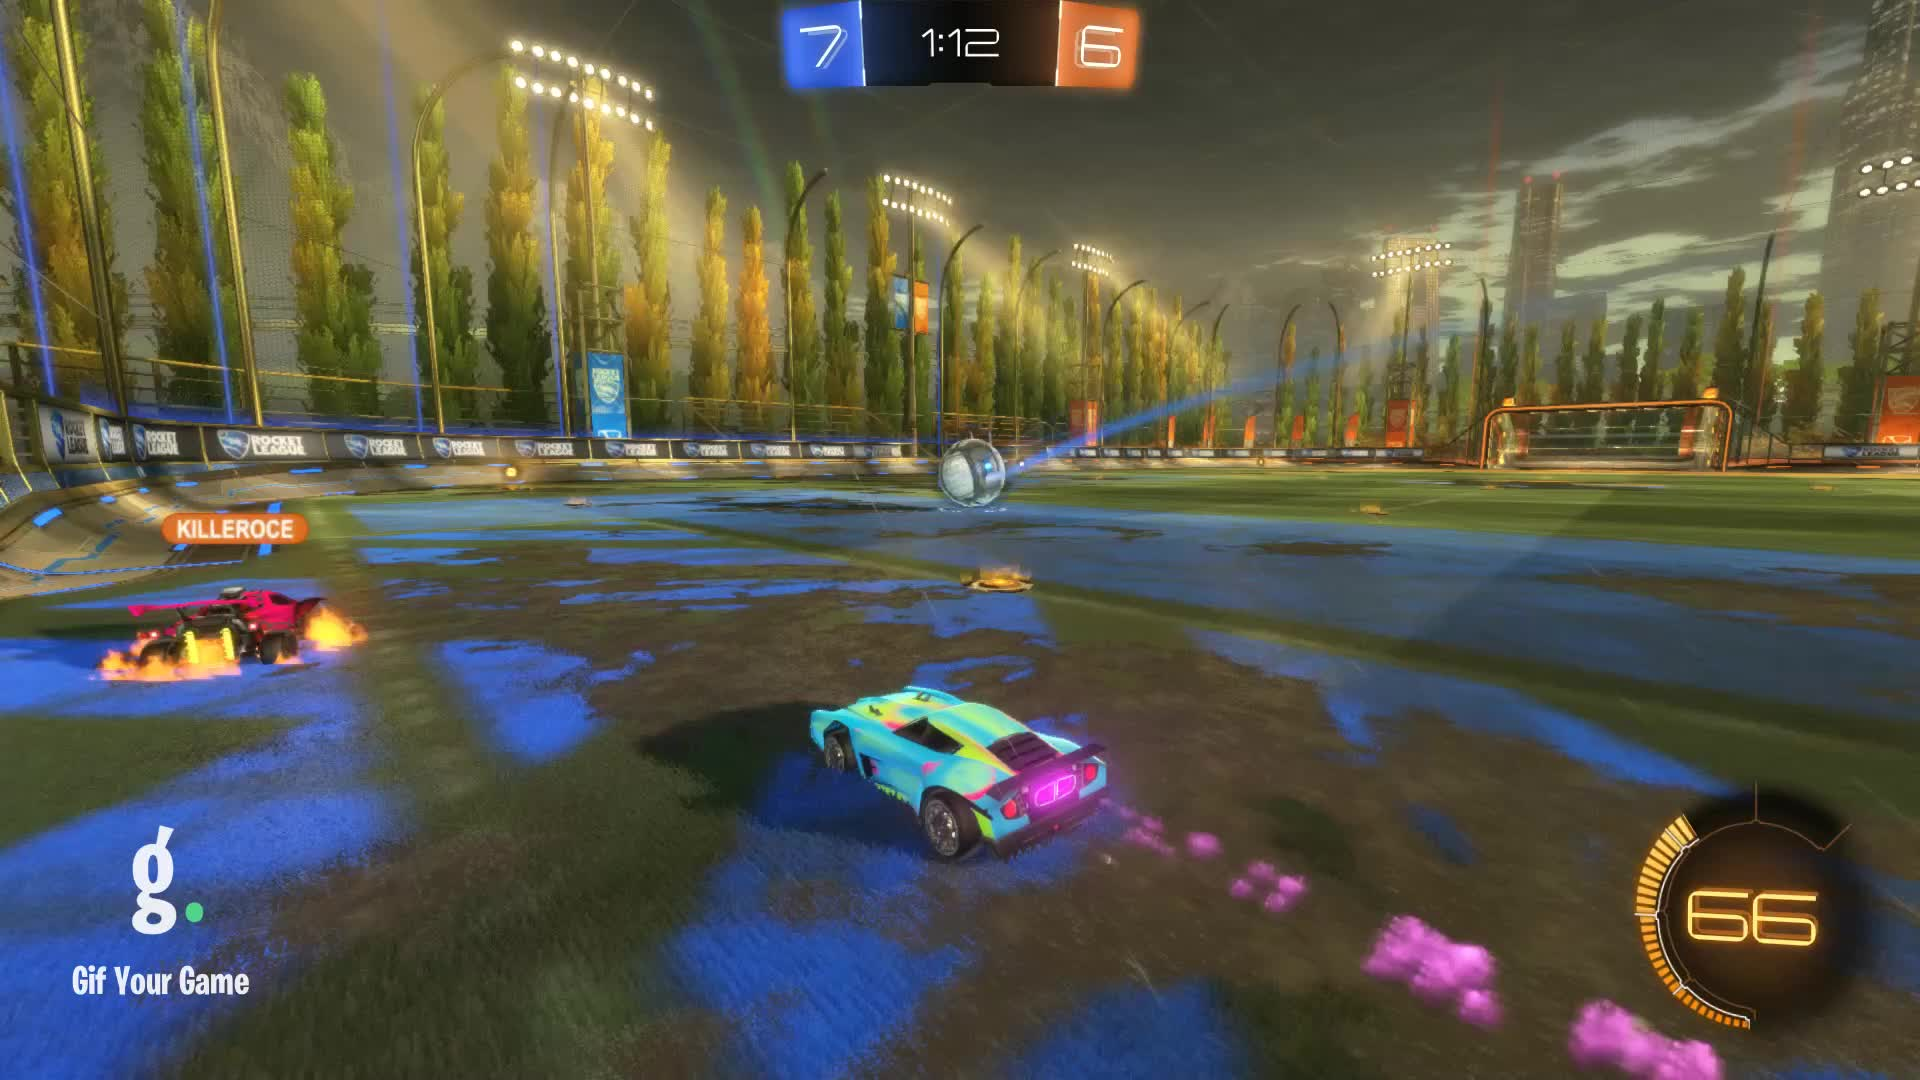 DTMerc, Gif Your Game, GifYourGame, Goal, Rocket League, RocketLeague, Goal 14: DTMerc GIFs